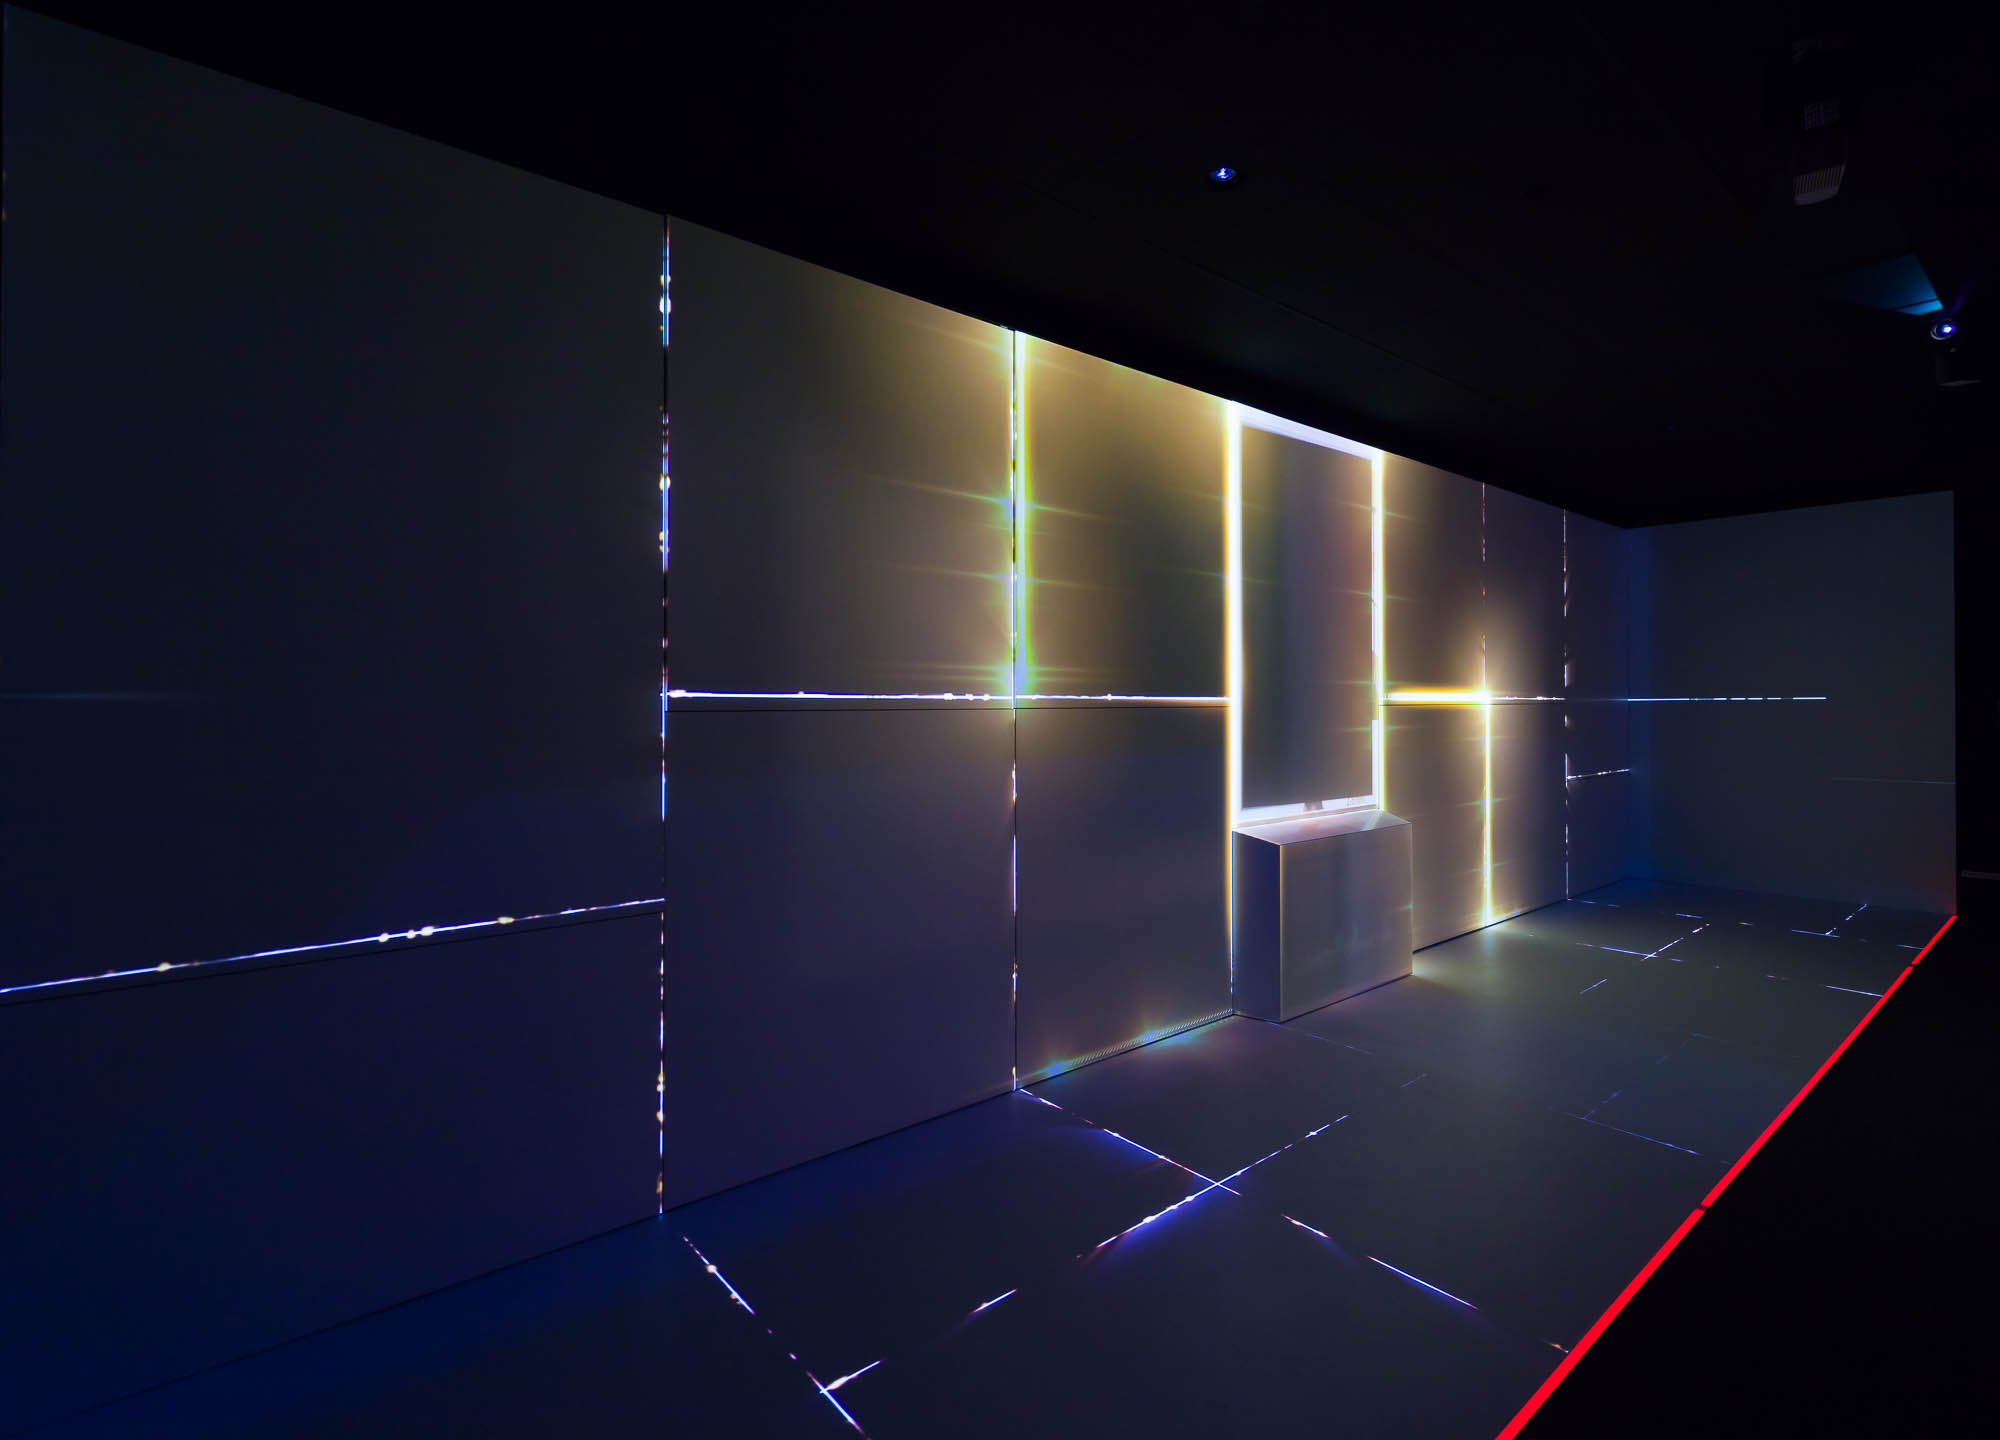 Projection on wall: light emerges between dark surfaces